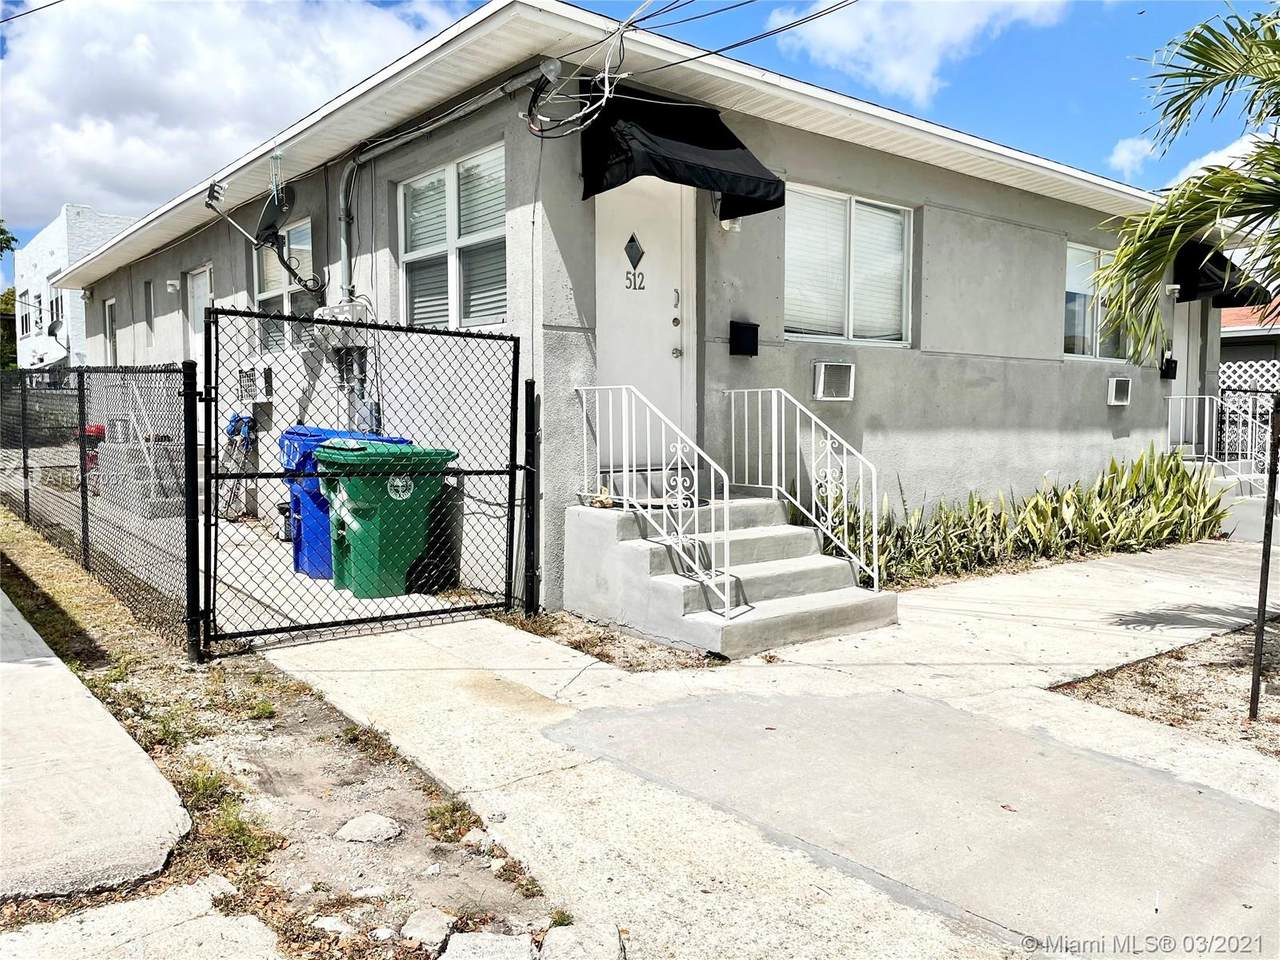 510 7th Ave - Photo 1